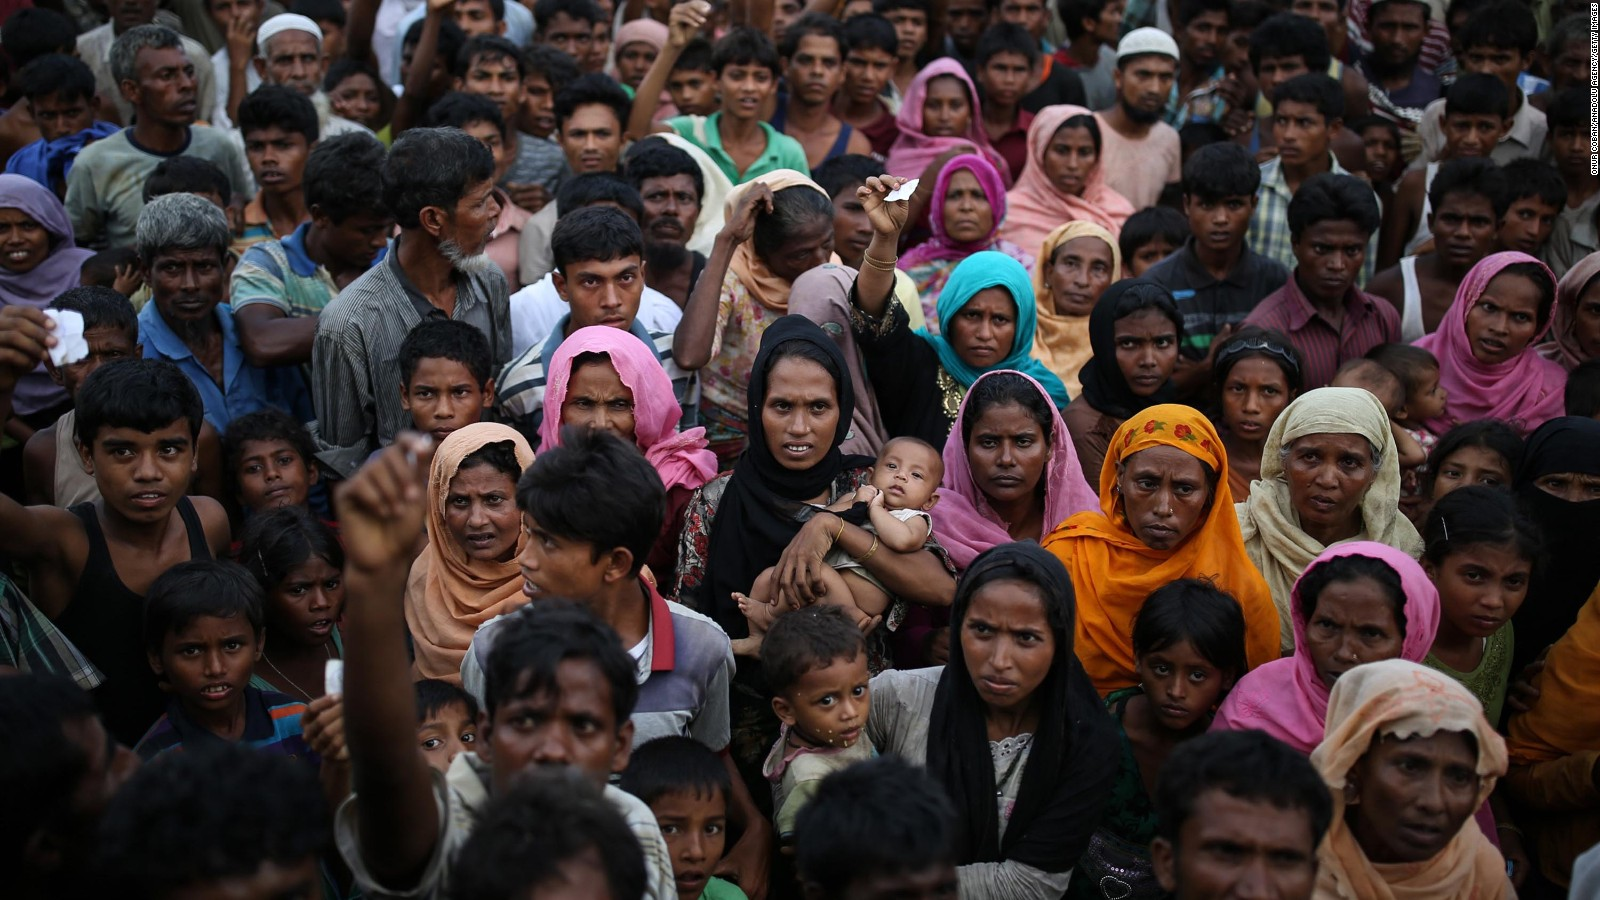 Illegal Rohingya immigrants reach as far as Ladakh, agencies suspect local support